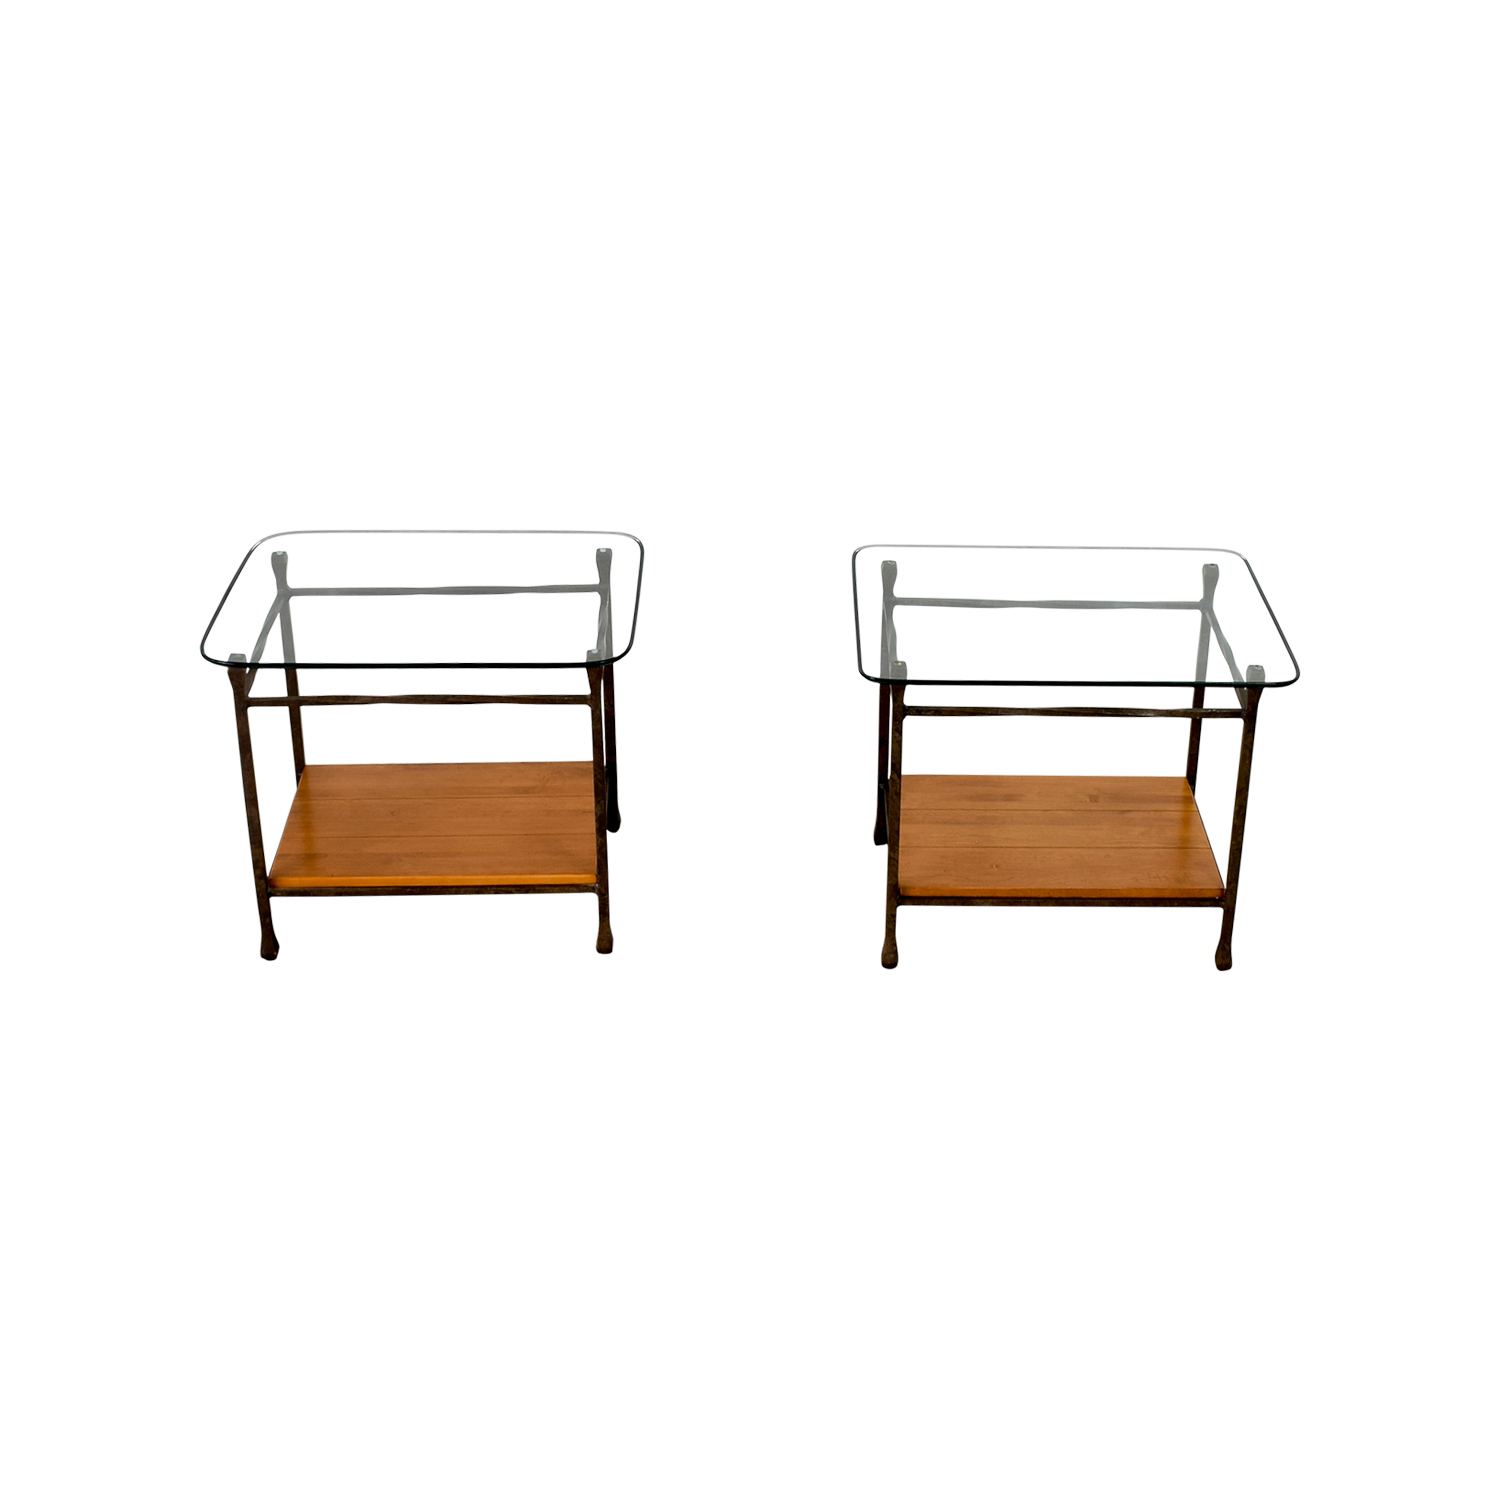 shop Ethan Allen Ethan Allen Wrought Iron End Tables online